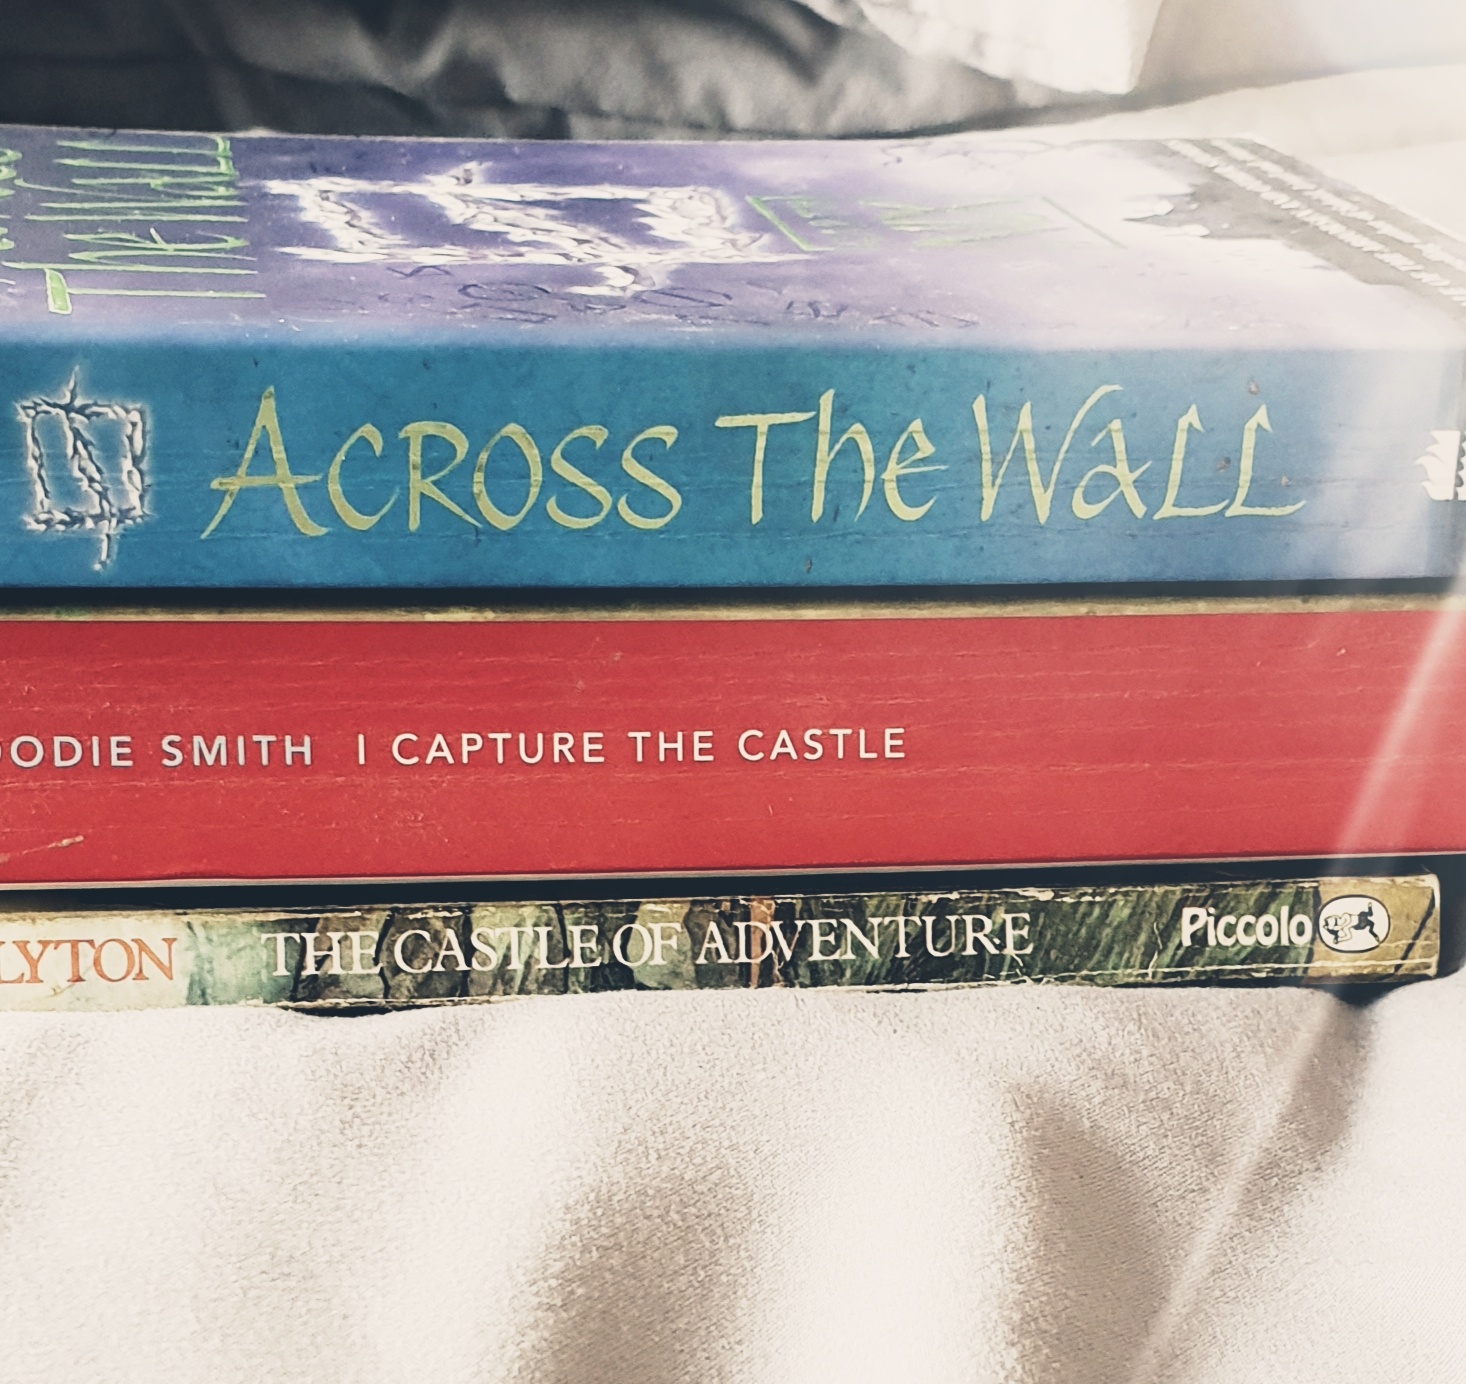 Bookspine poetry - Across the Wall - I Capture the Castle - The Castle of Adventure - The Last Krystallos